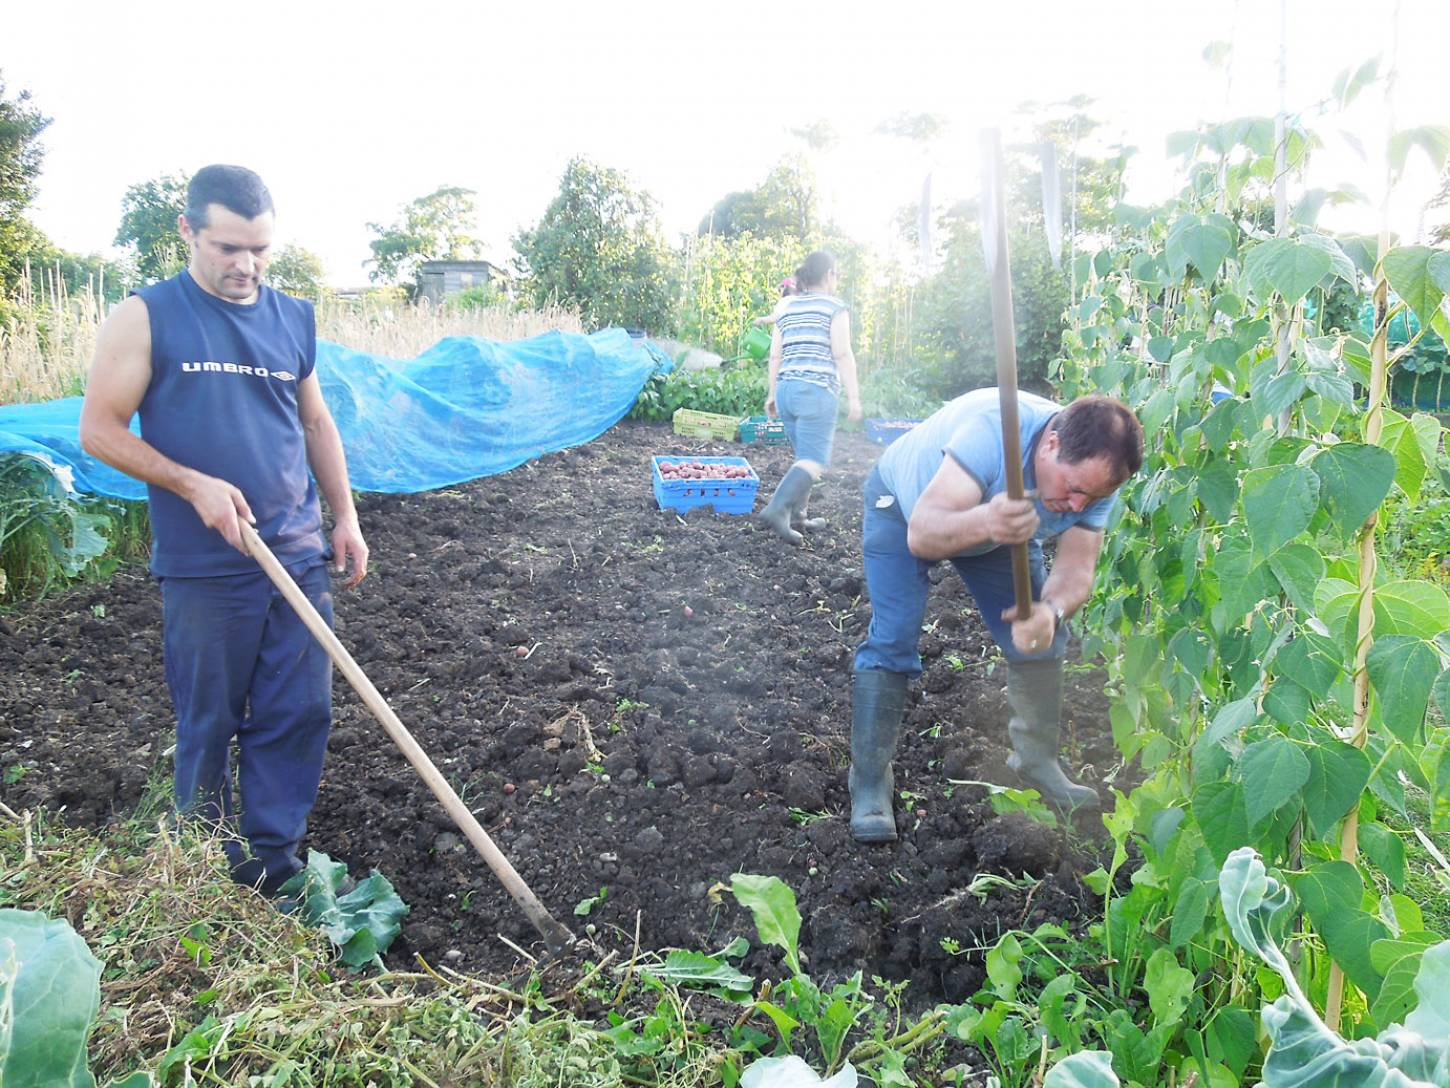 potato harvest '16 plot 36 - 7:29pm&nbsp;6<sup>th</sup>&nbsp;Aug.&nbsp;'16